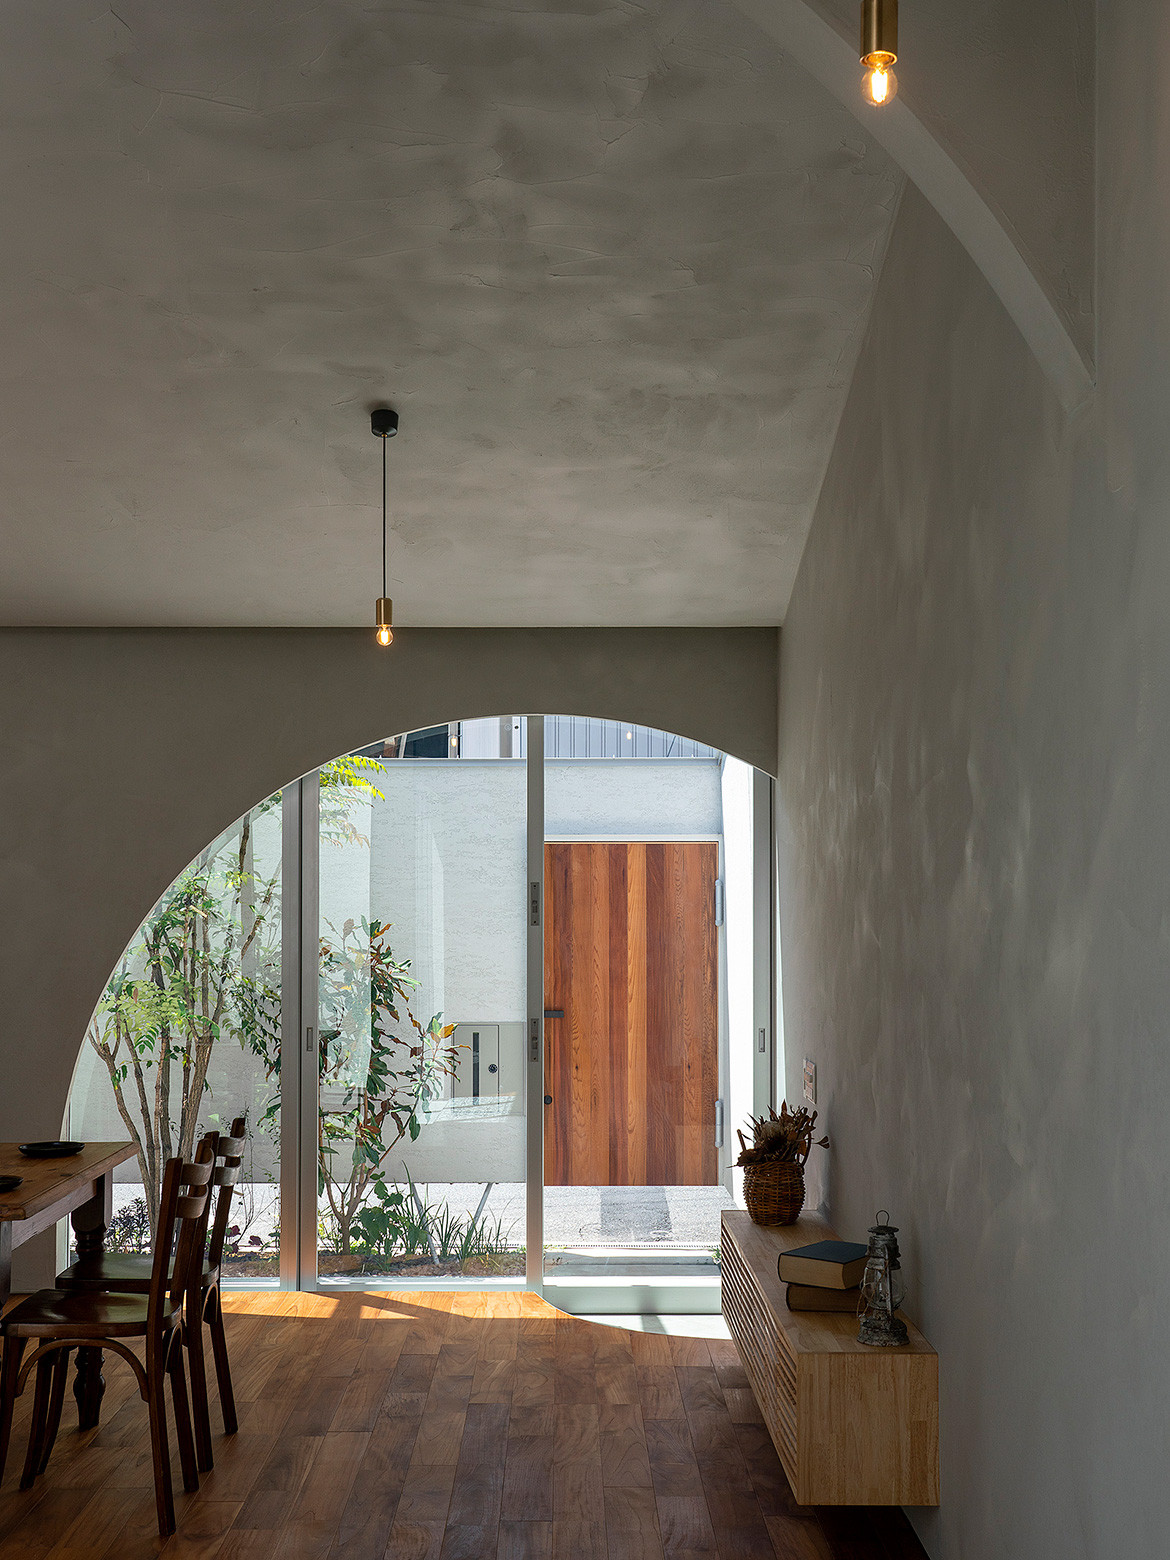 House in Ohasu by Arbol features timber floorboards, rendered concrete walls, a central courtyard, high ceilings and architectural arches.